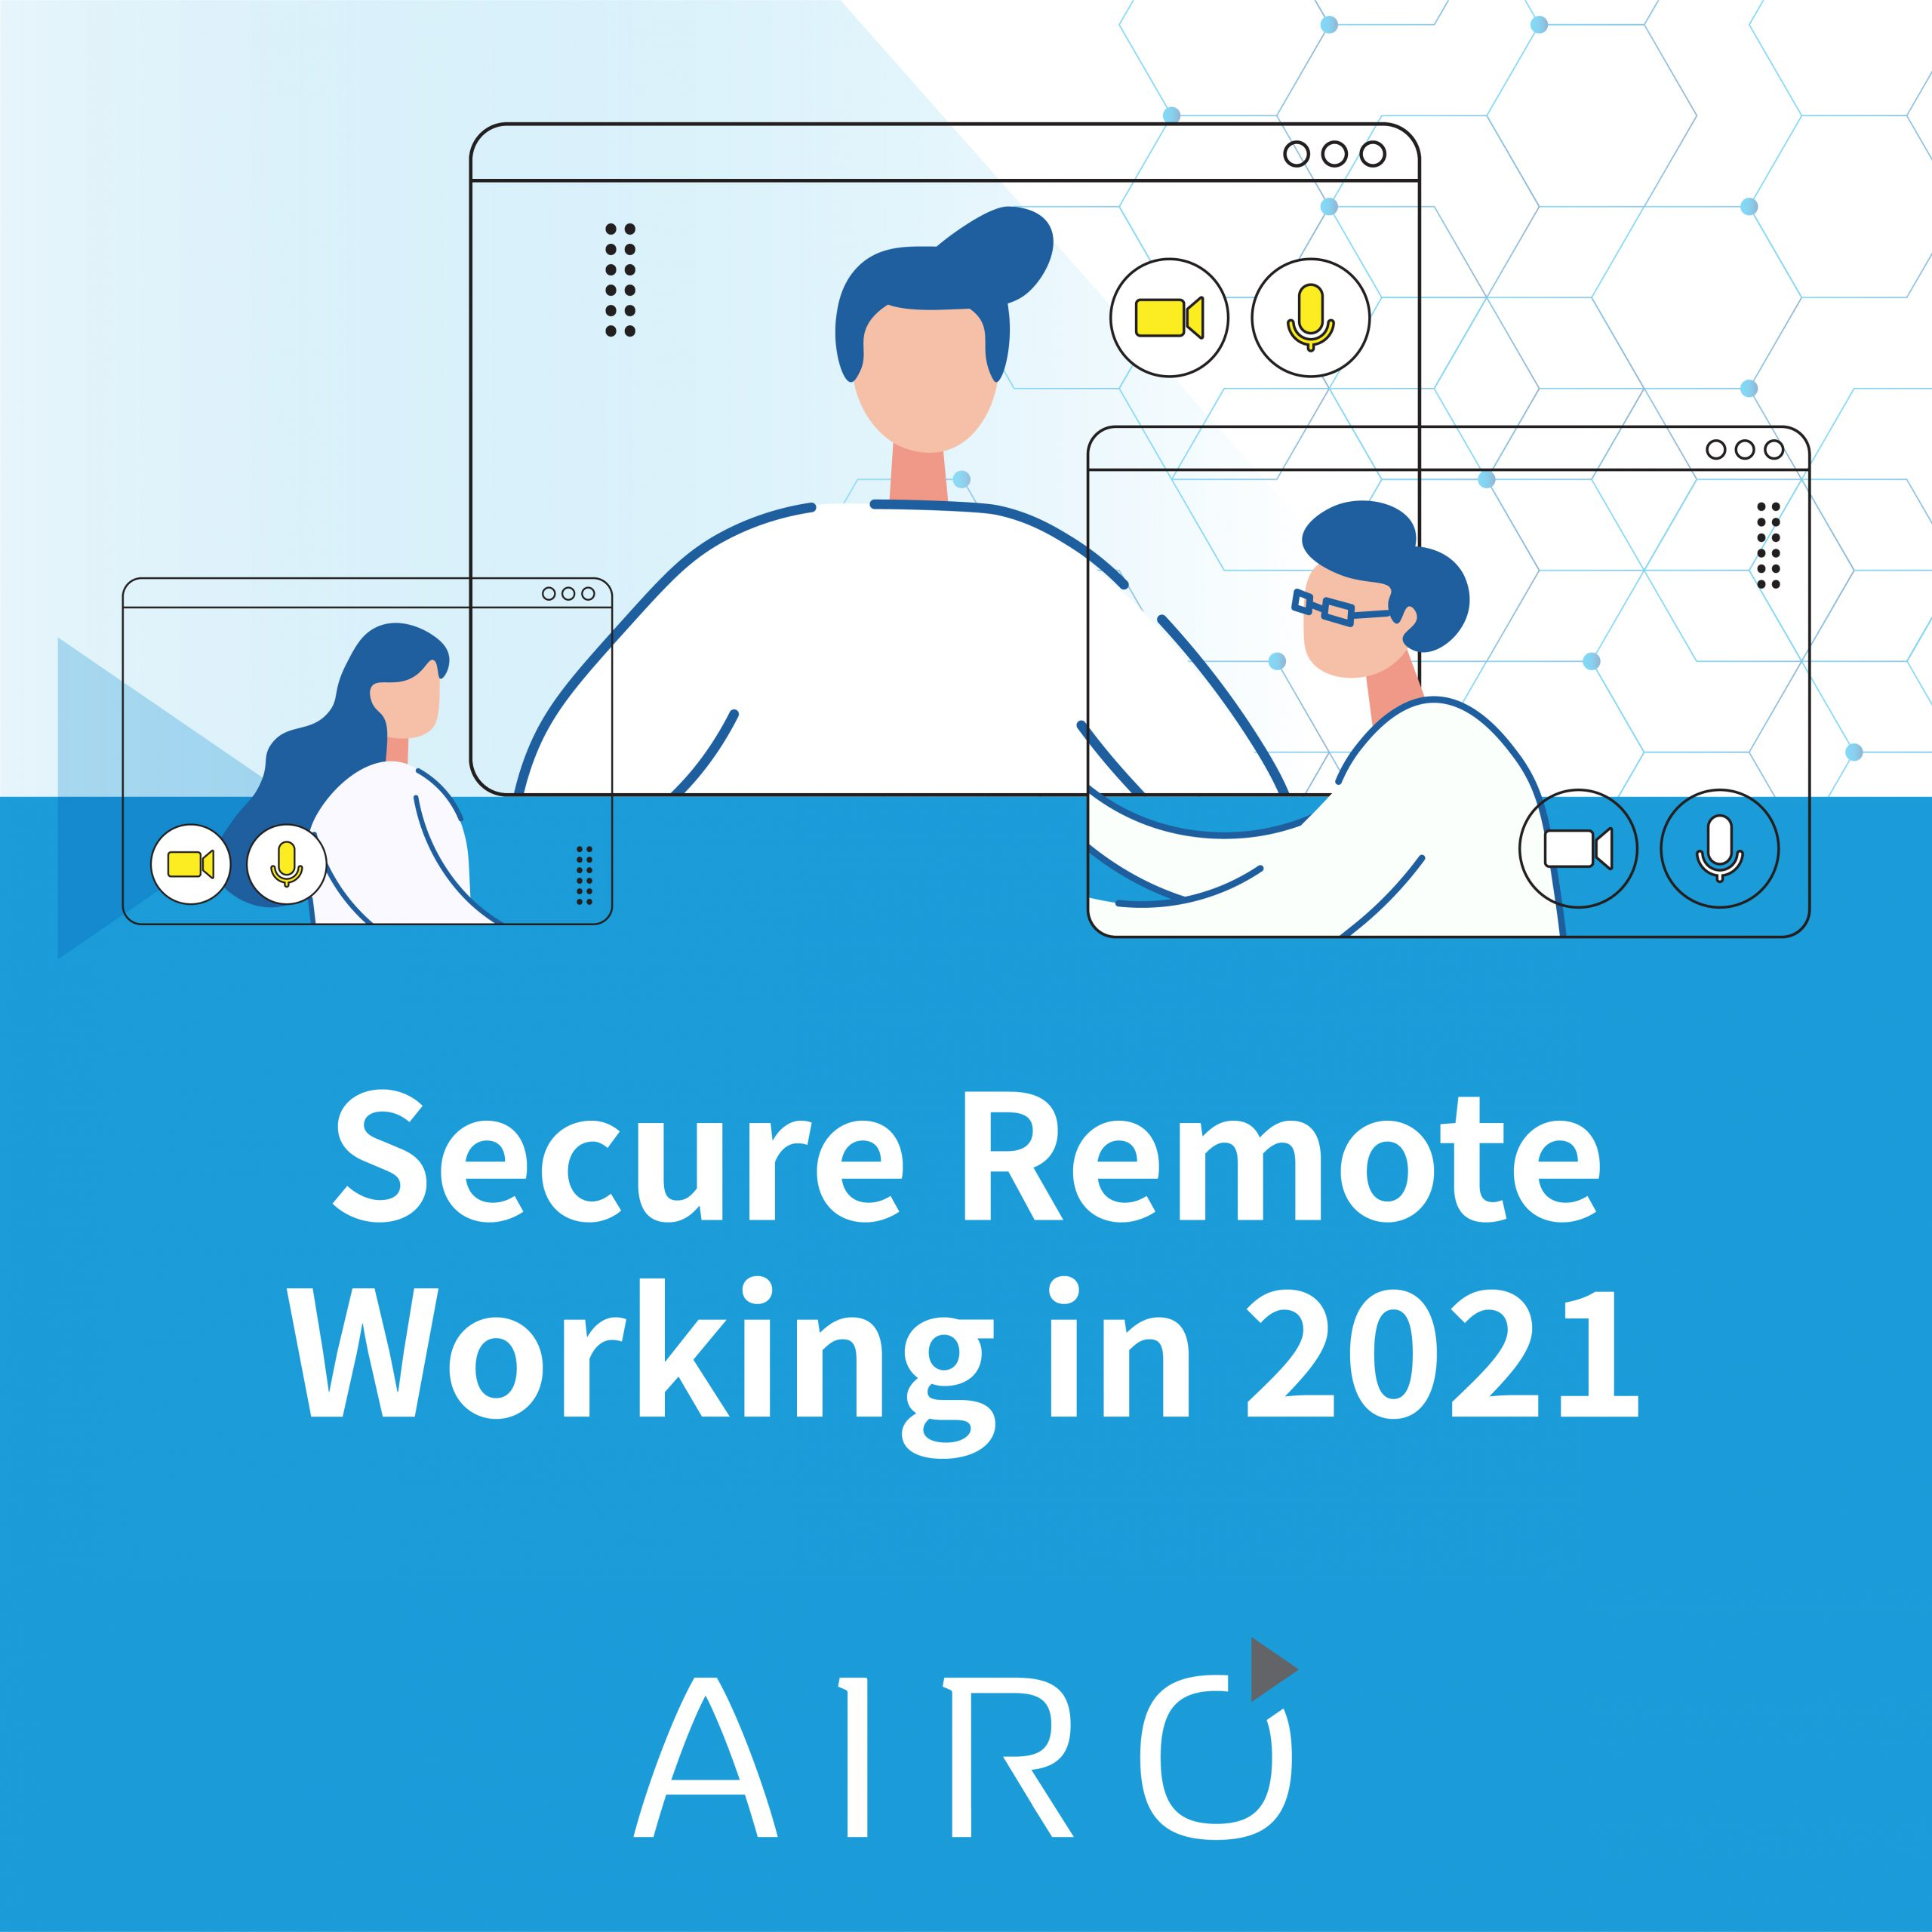 Secure Remote Working in 2021